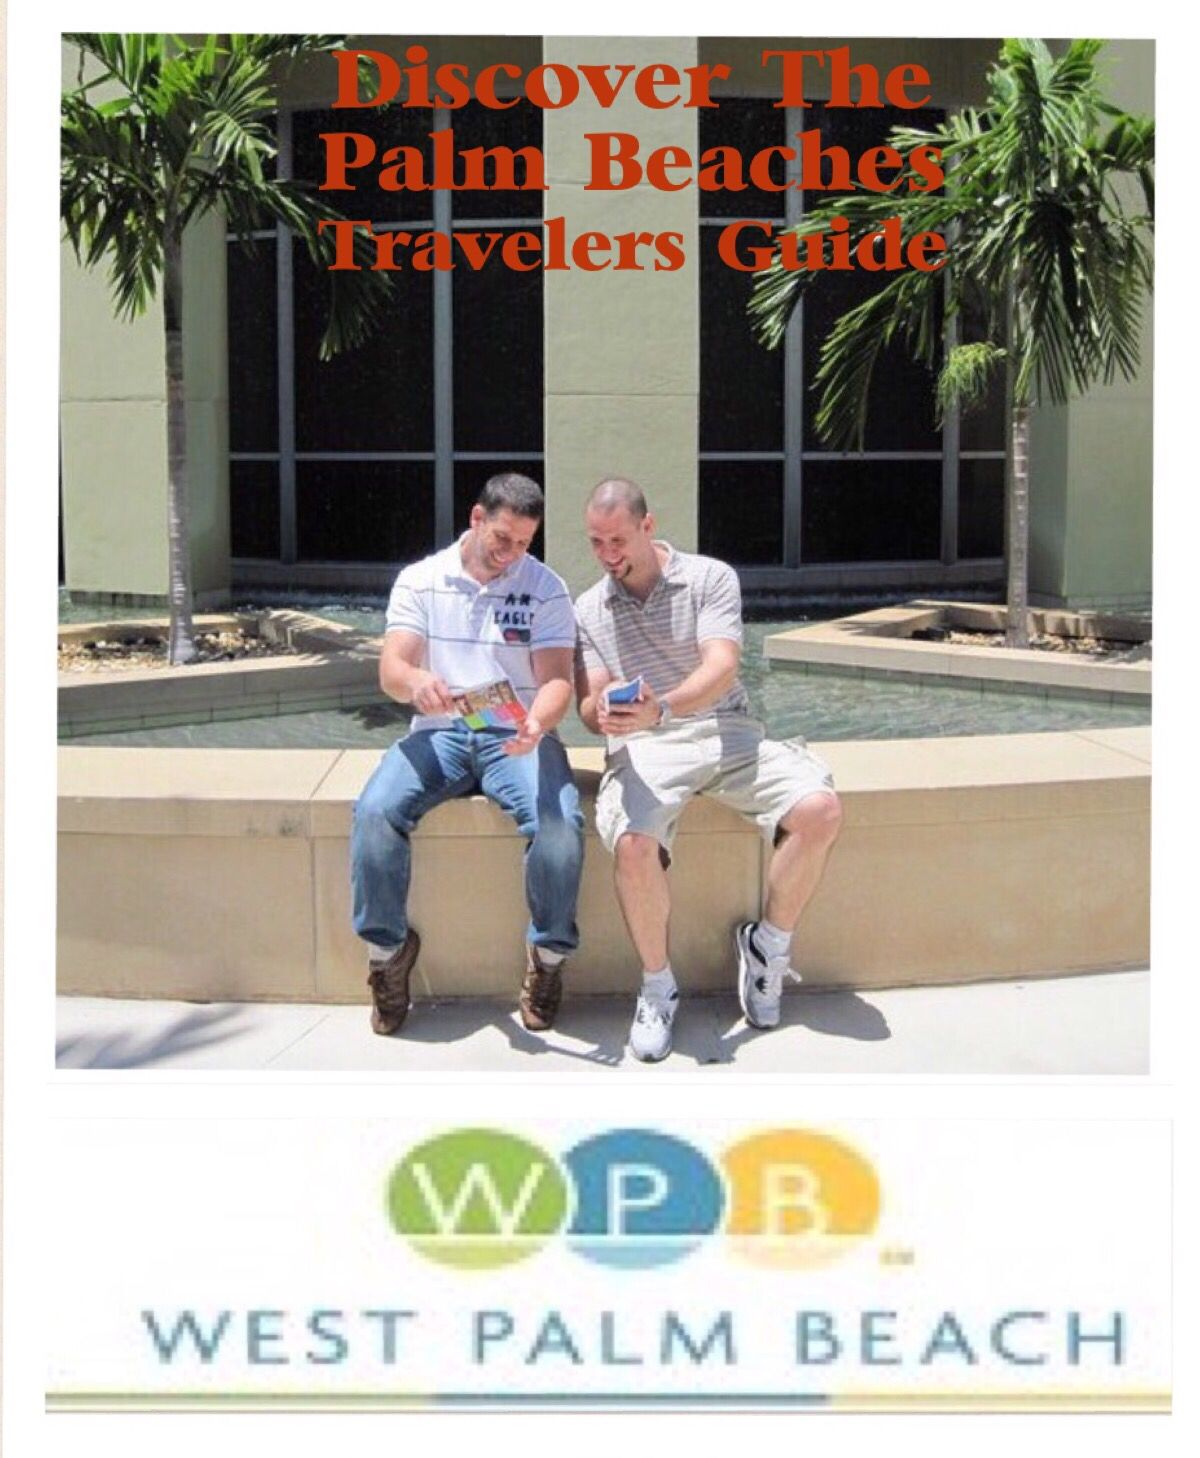 The Palm Beaches travel guide... I created this using a photo i took of my husband snd his brother...